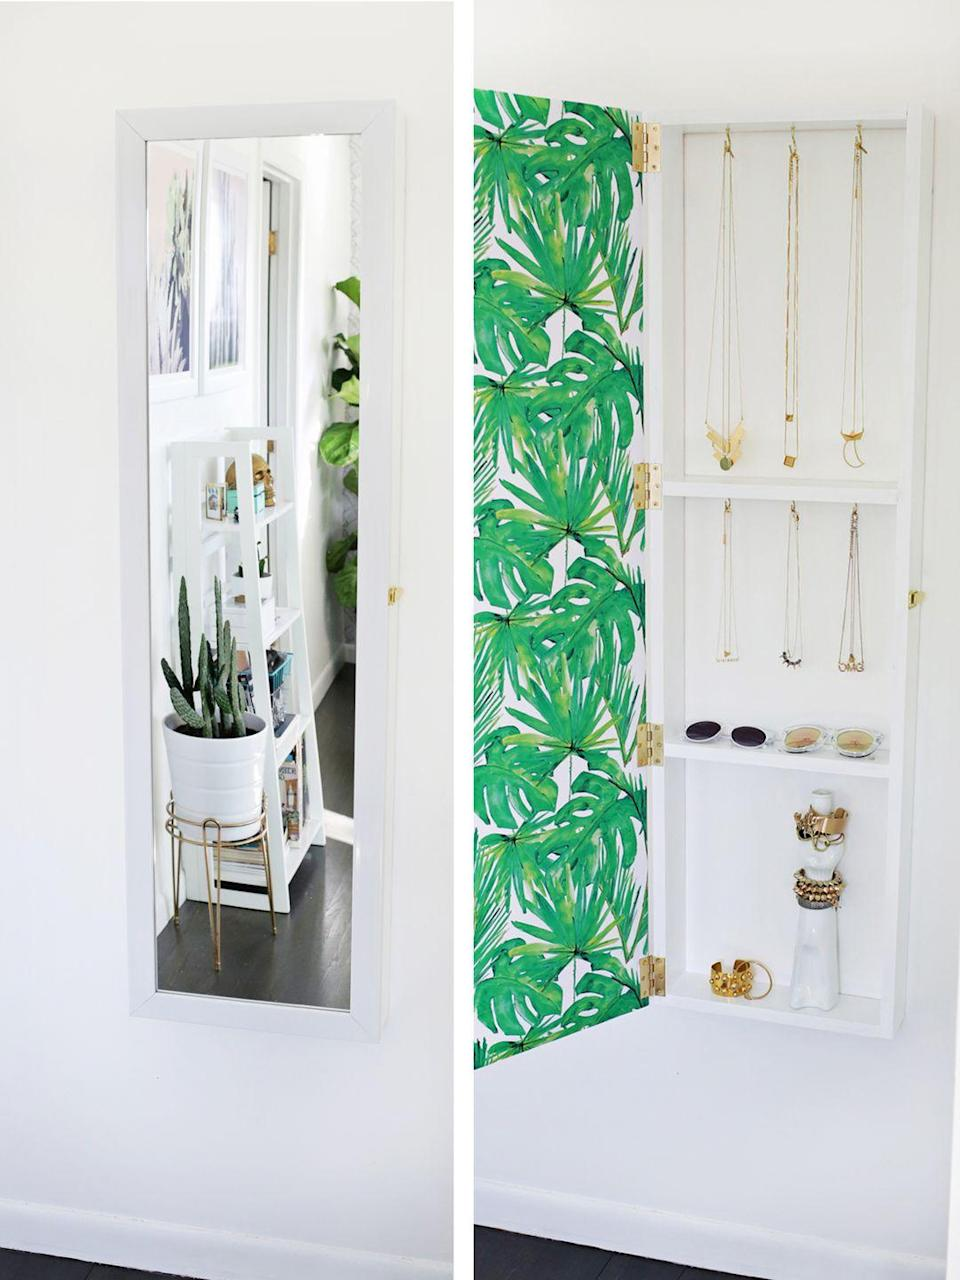 """<p>Think of this like a super huge medicine cabinet, but for accessories. Yes, you have to DIY it, but it's a great way to make use of wall space.</p><p><a href=""""http://www.abeautifulmess.com/2016/01/jewelry-storage-mirror-diy.html"""" rel=""""nofollow noopener"""" target=""""_blank"""" data-ylk=""""slk:Get the how-to at A Beautiful Mess »"""" class=""""link rapid-noclick-resp""""><em>Get the how-to at A Beautiful Mess »</em></a></p>"""